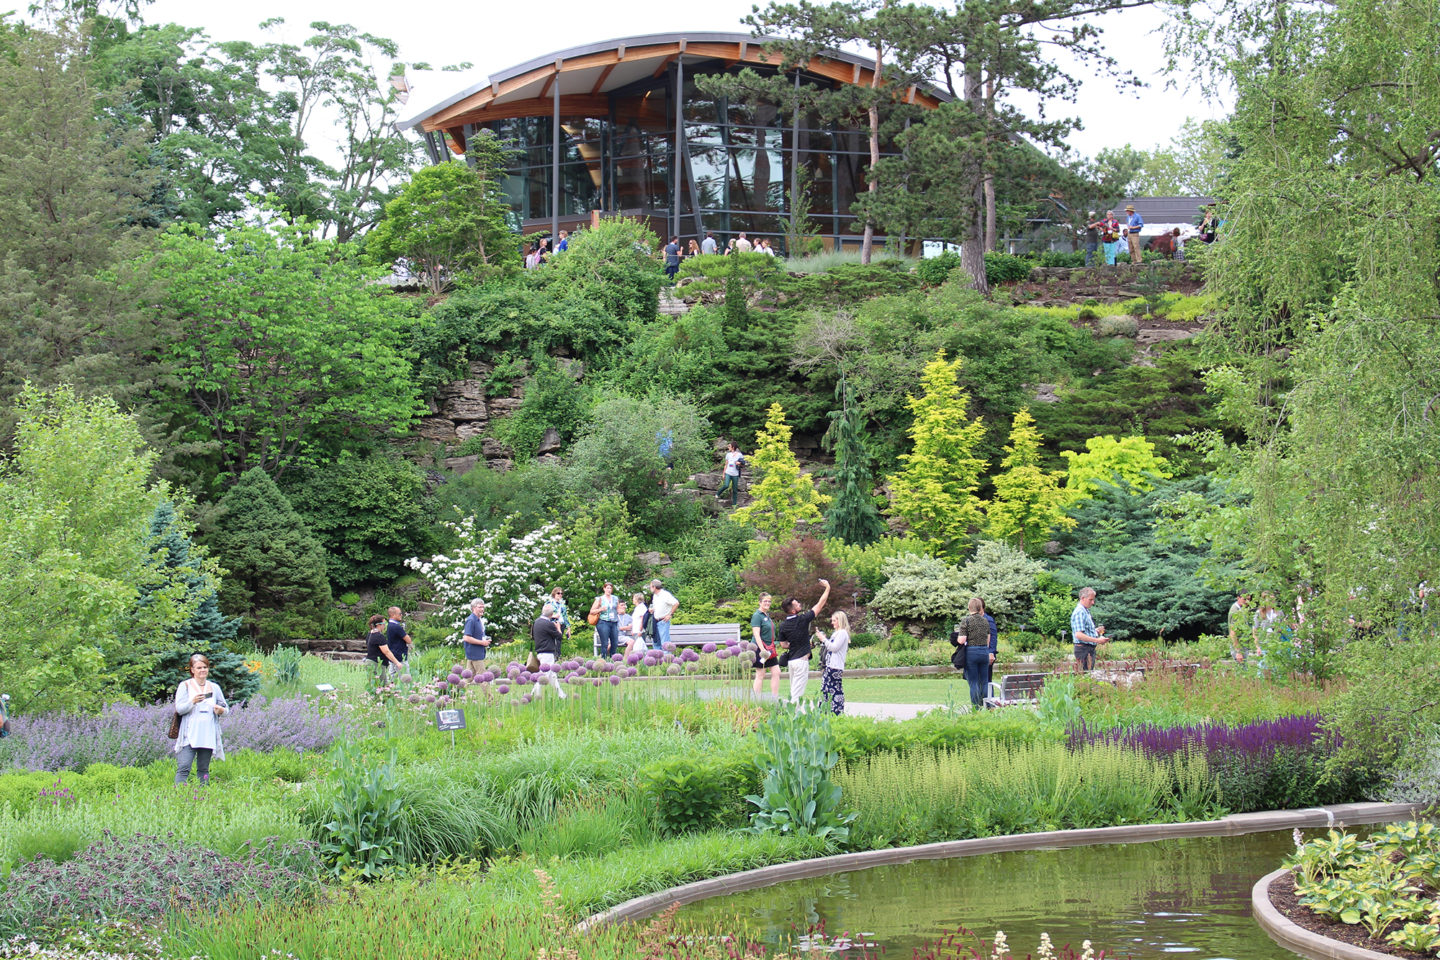 Save 25% on Evening Visits to RBG this Summer